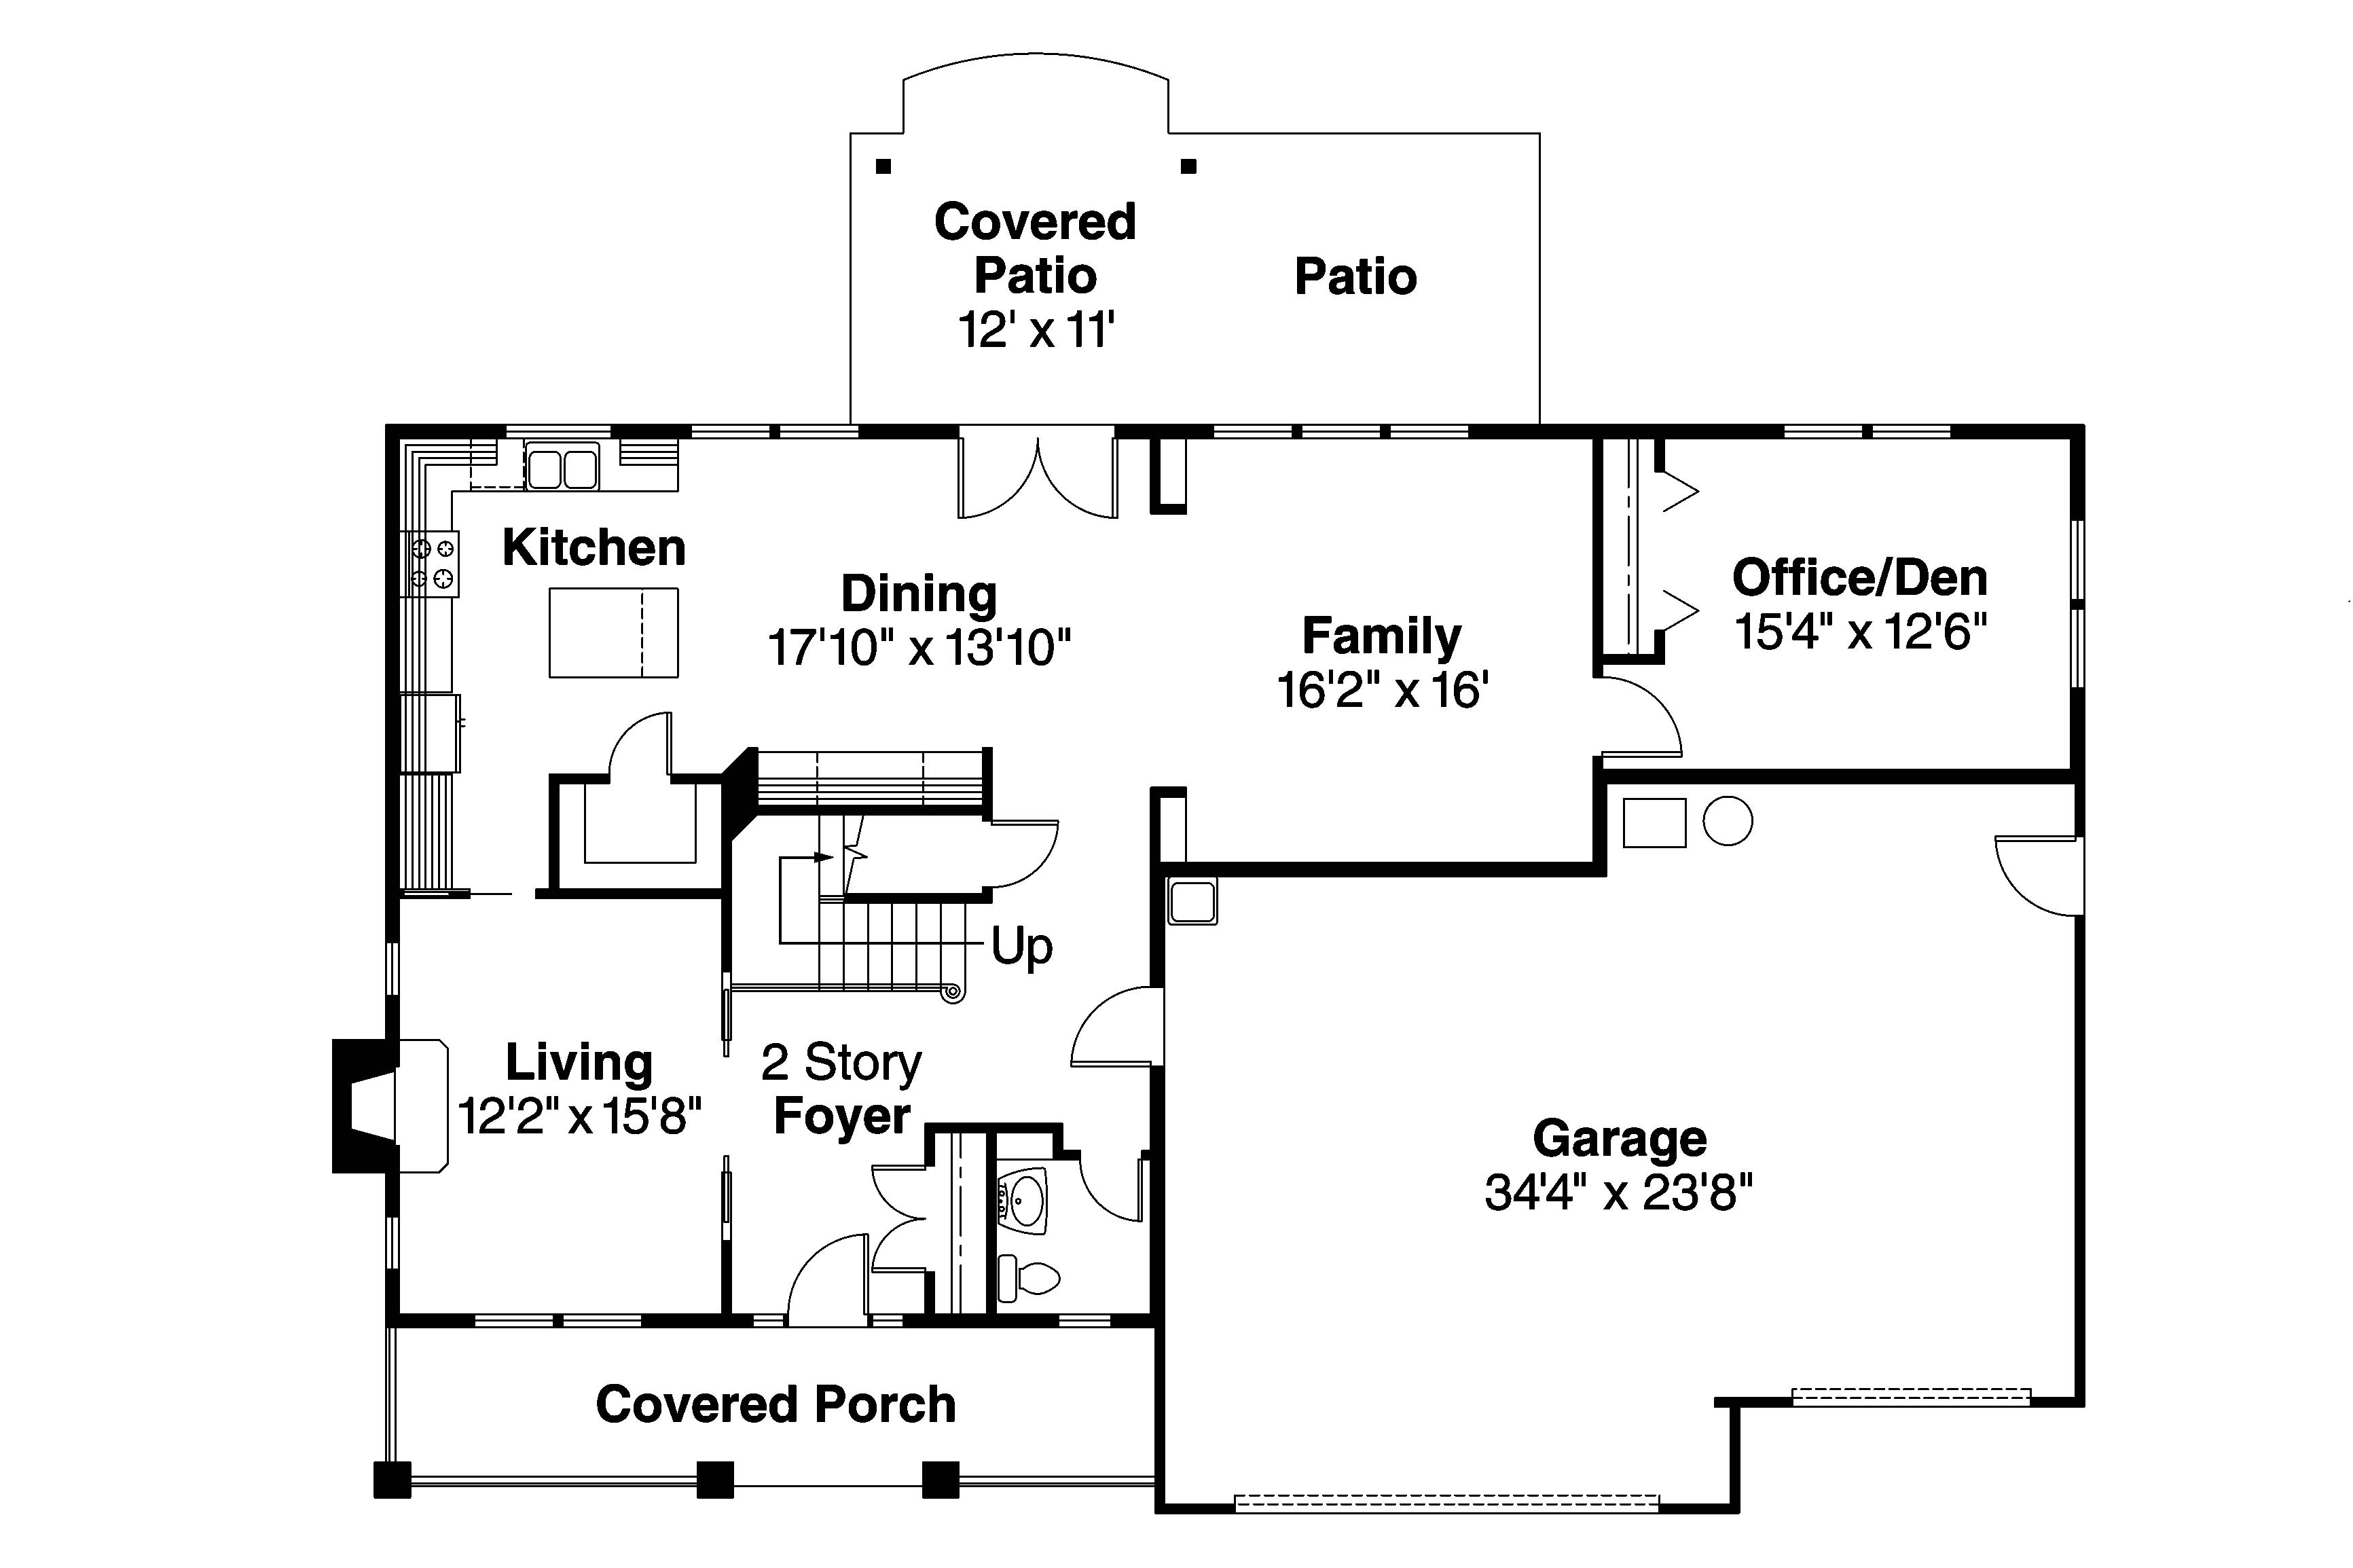 Floor Plan And Elevation Of A House : Bungalow house plans cavanaugh associated designs